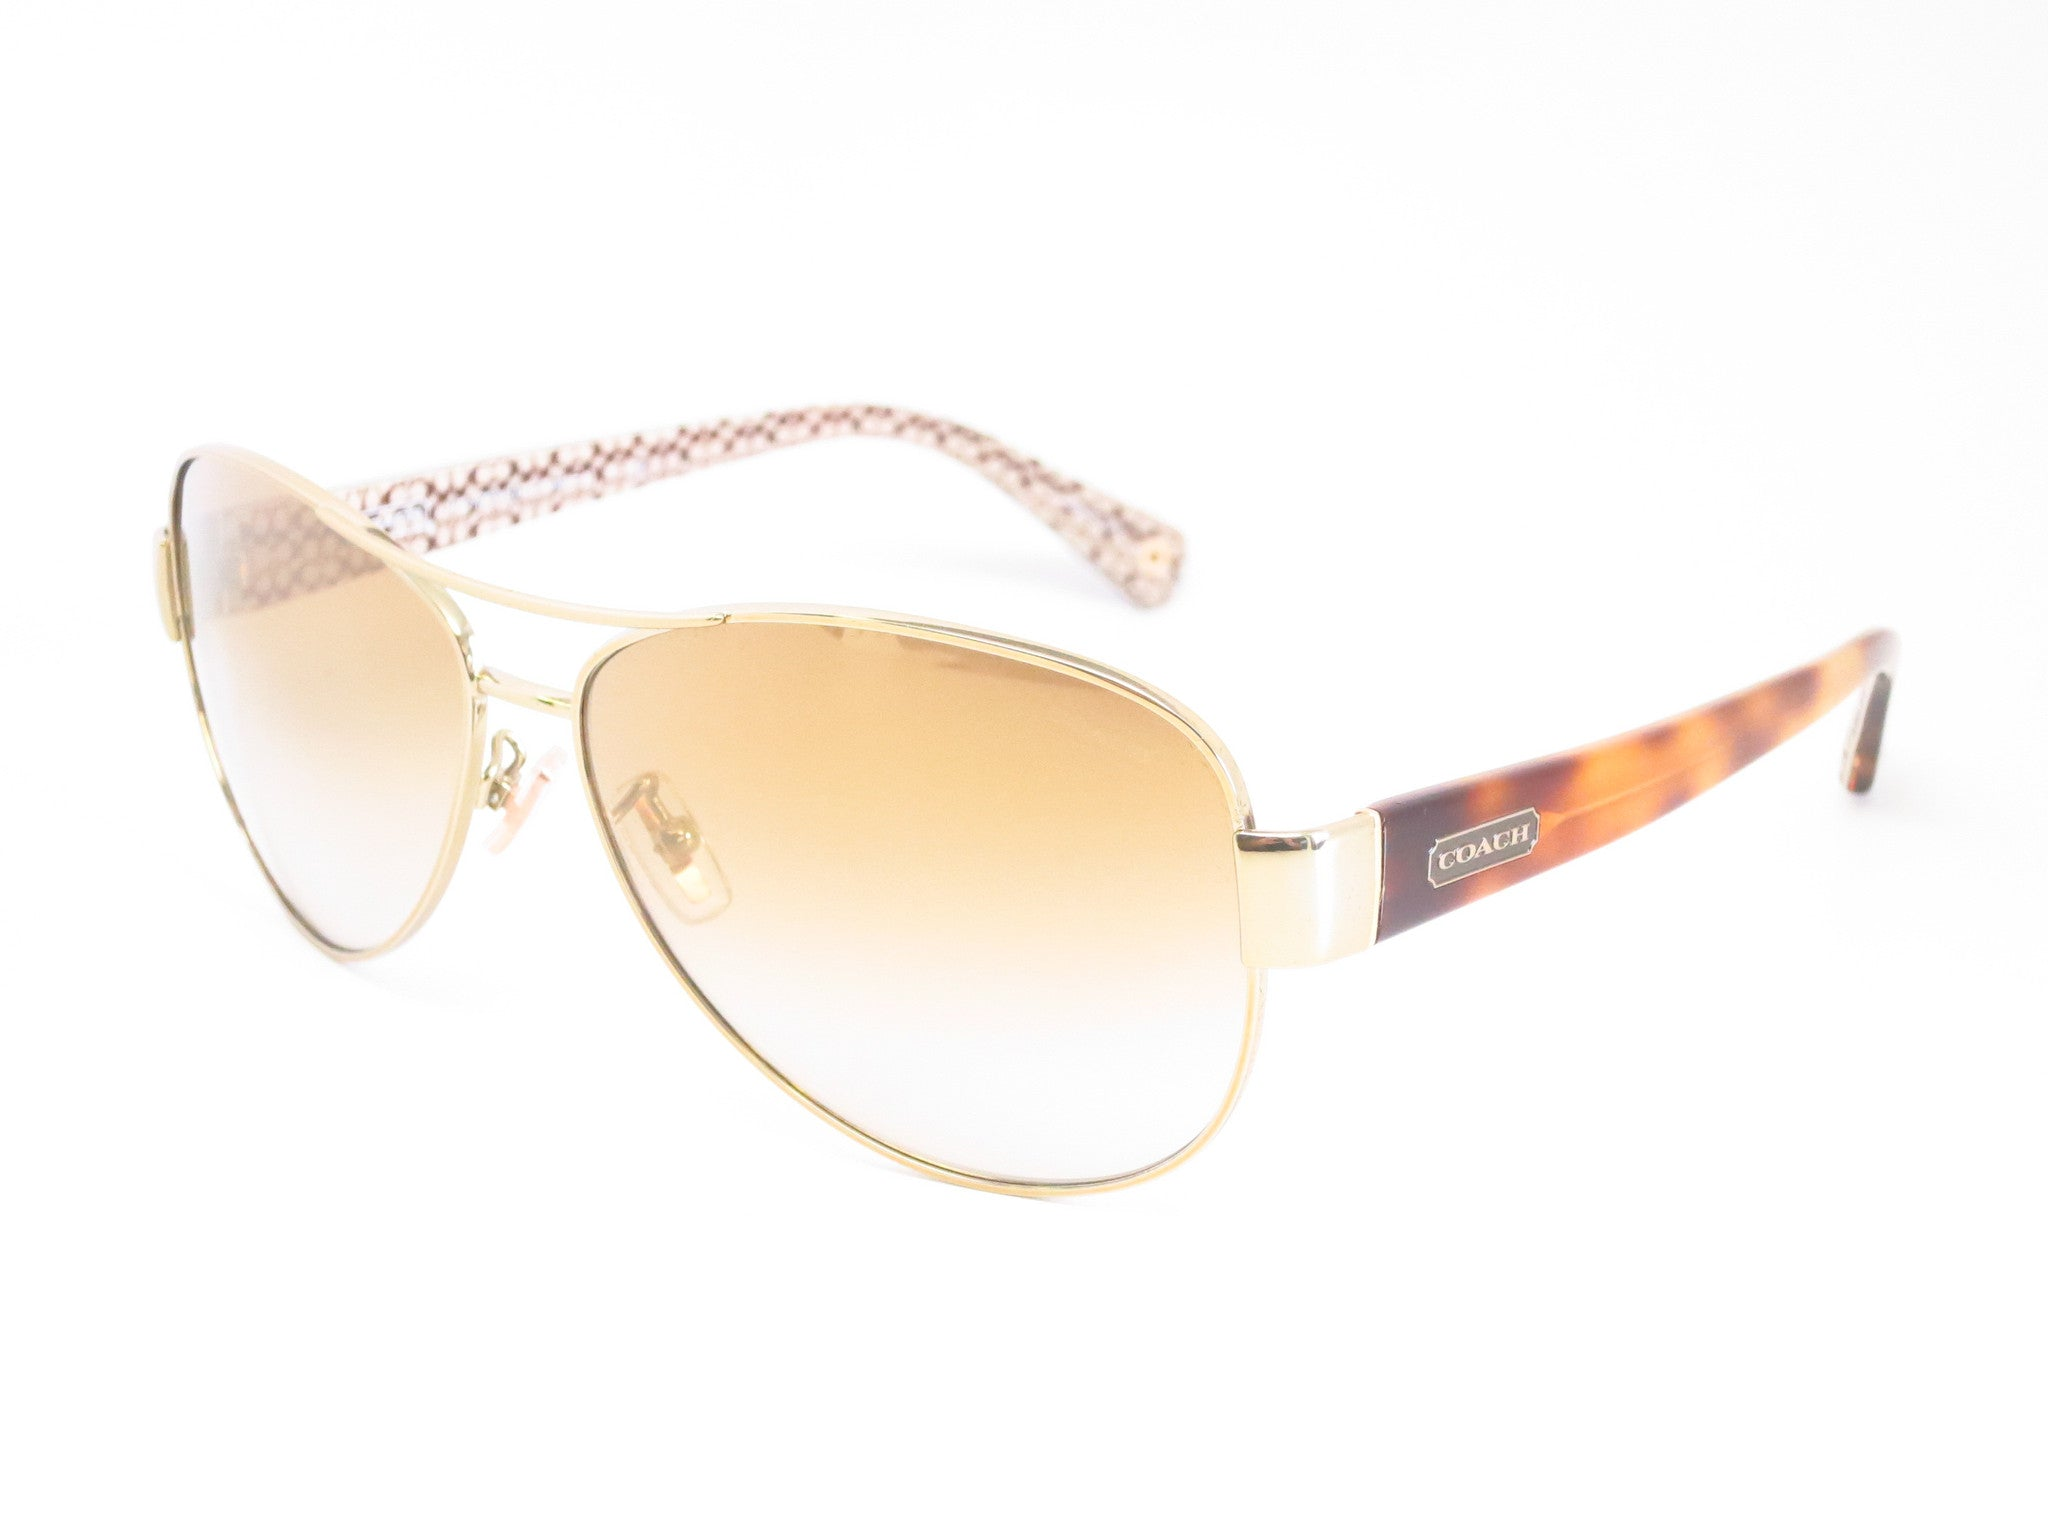 71713ec8c5 ... new style coach hc 7003 kristina 9176 6e gold tortoise sand signature c  sunglasses eye e1578